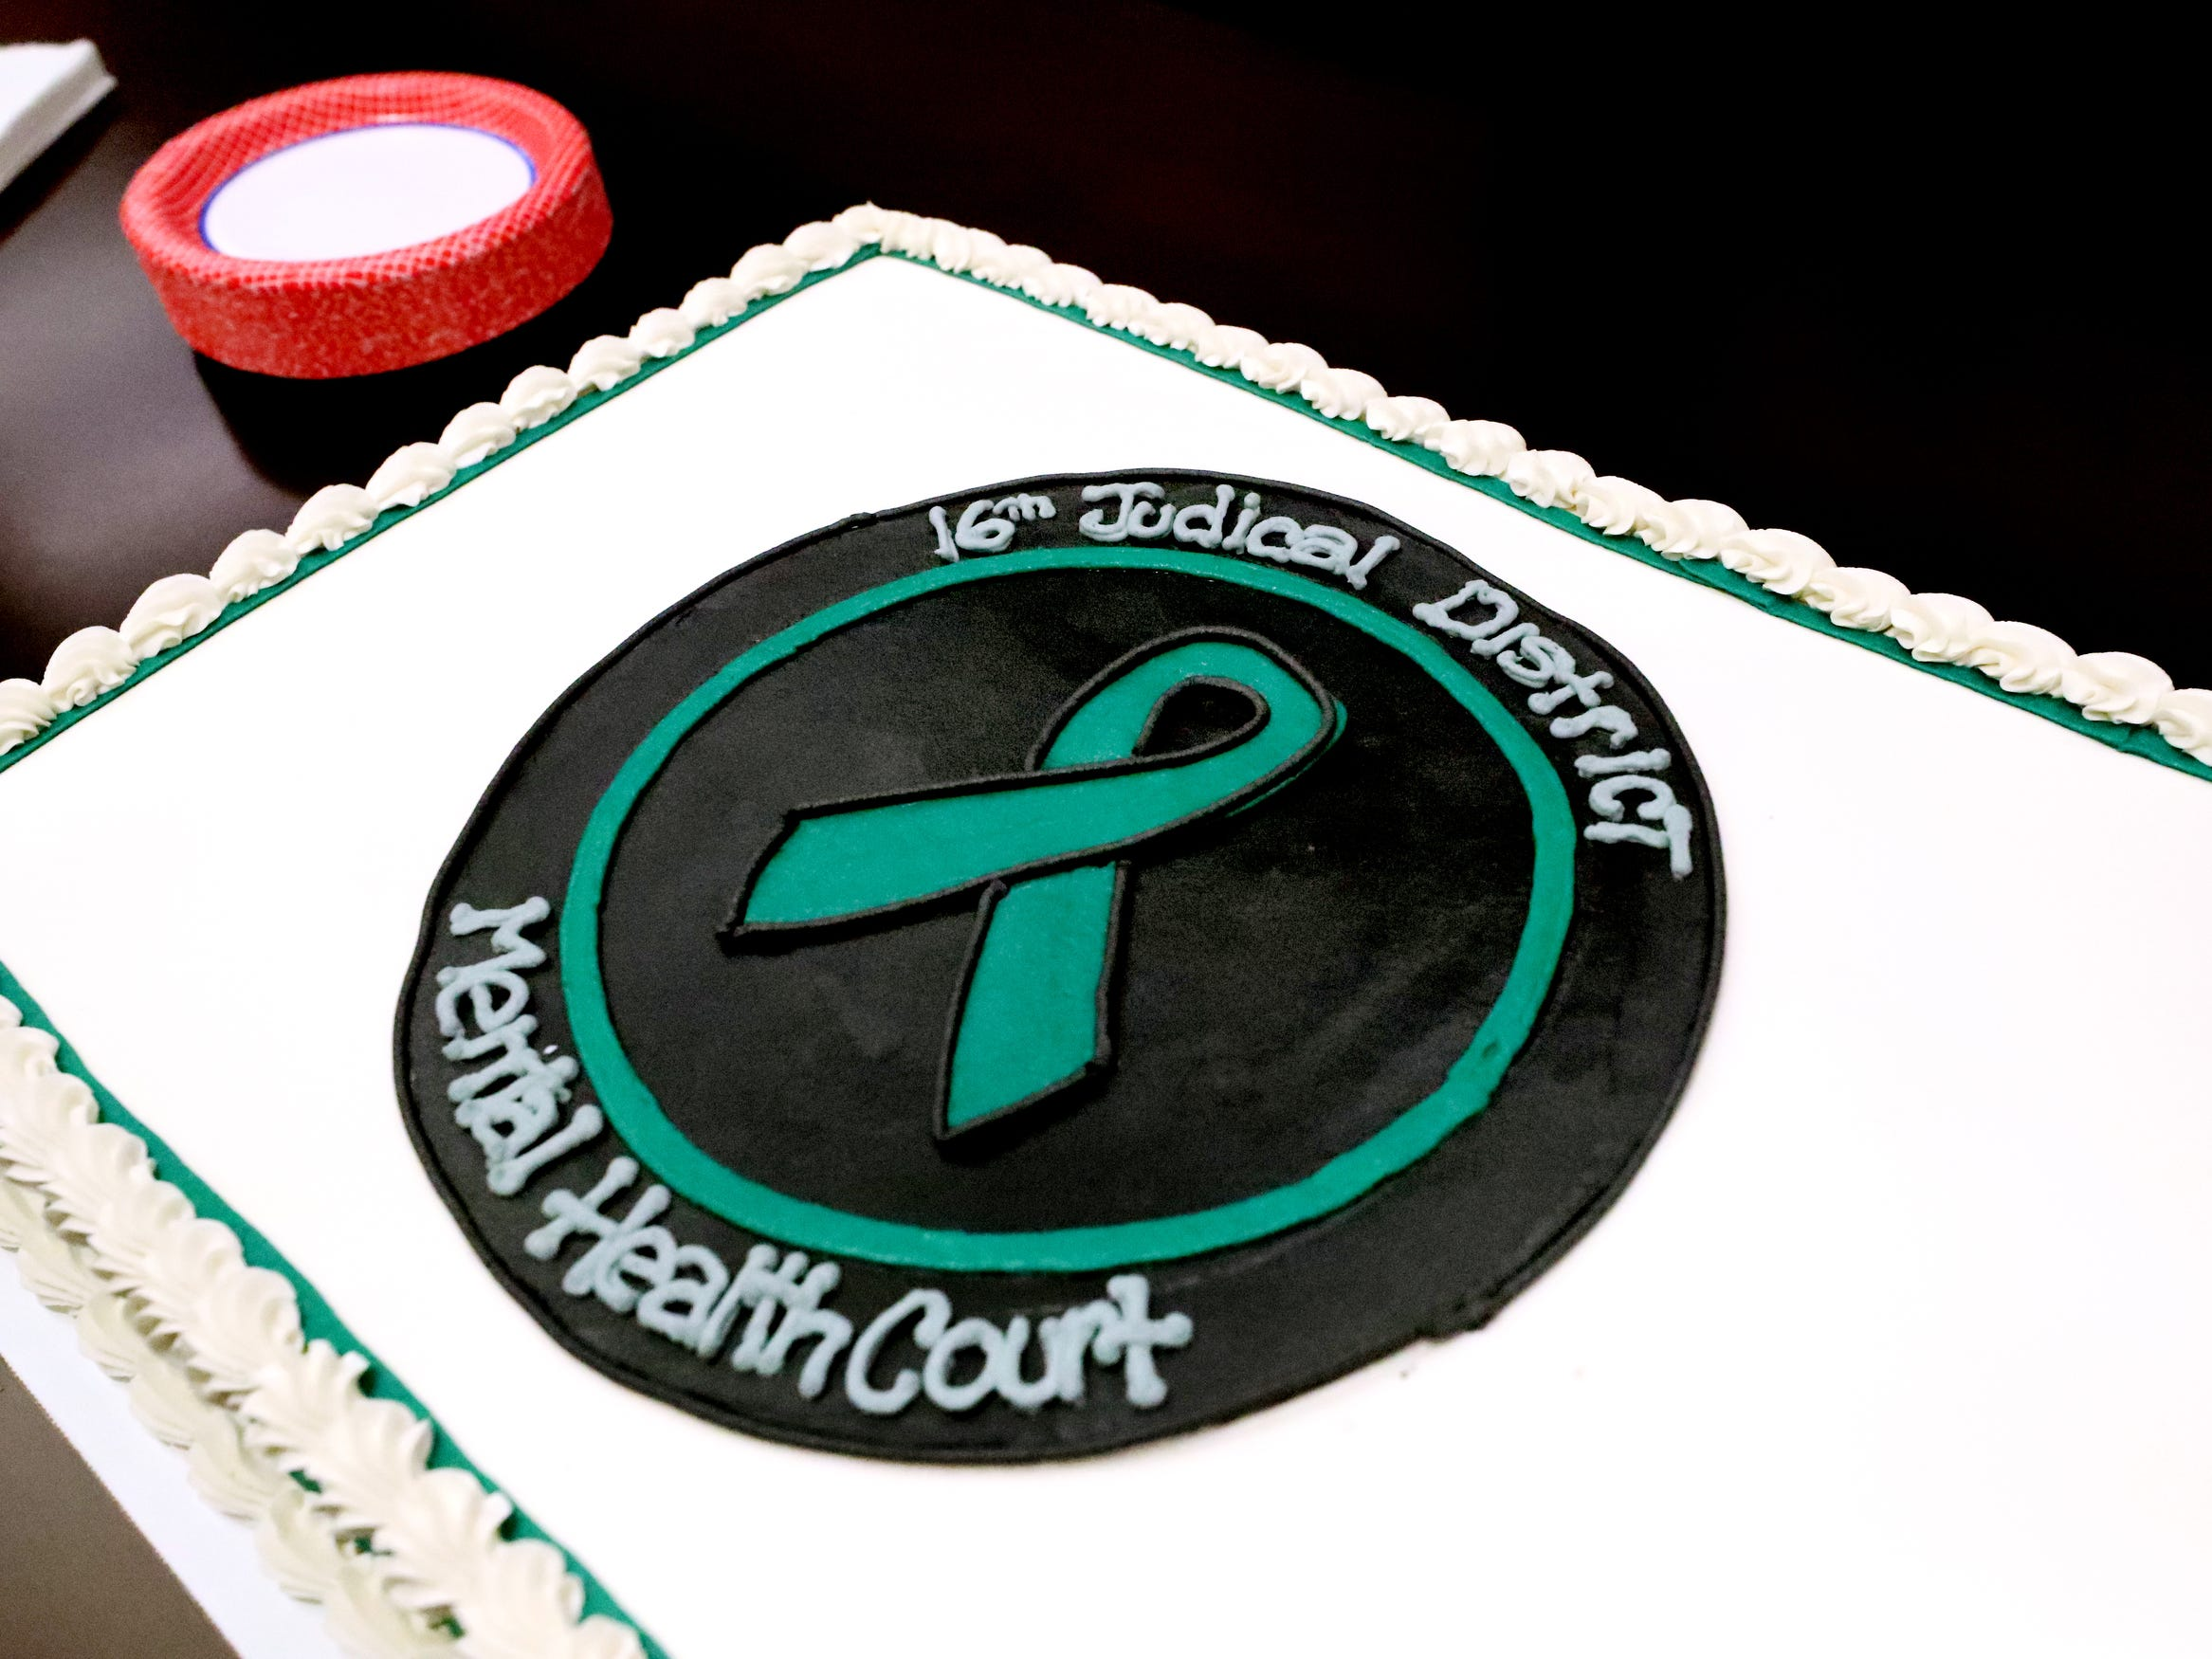 Cake was served at the two year anniversary celebration for Mental Health Court on Friday, Feb. 22, 2019.